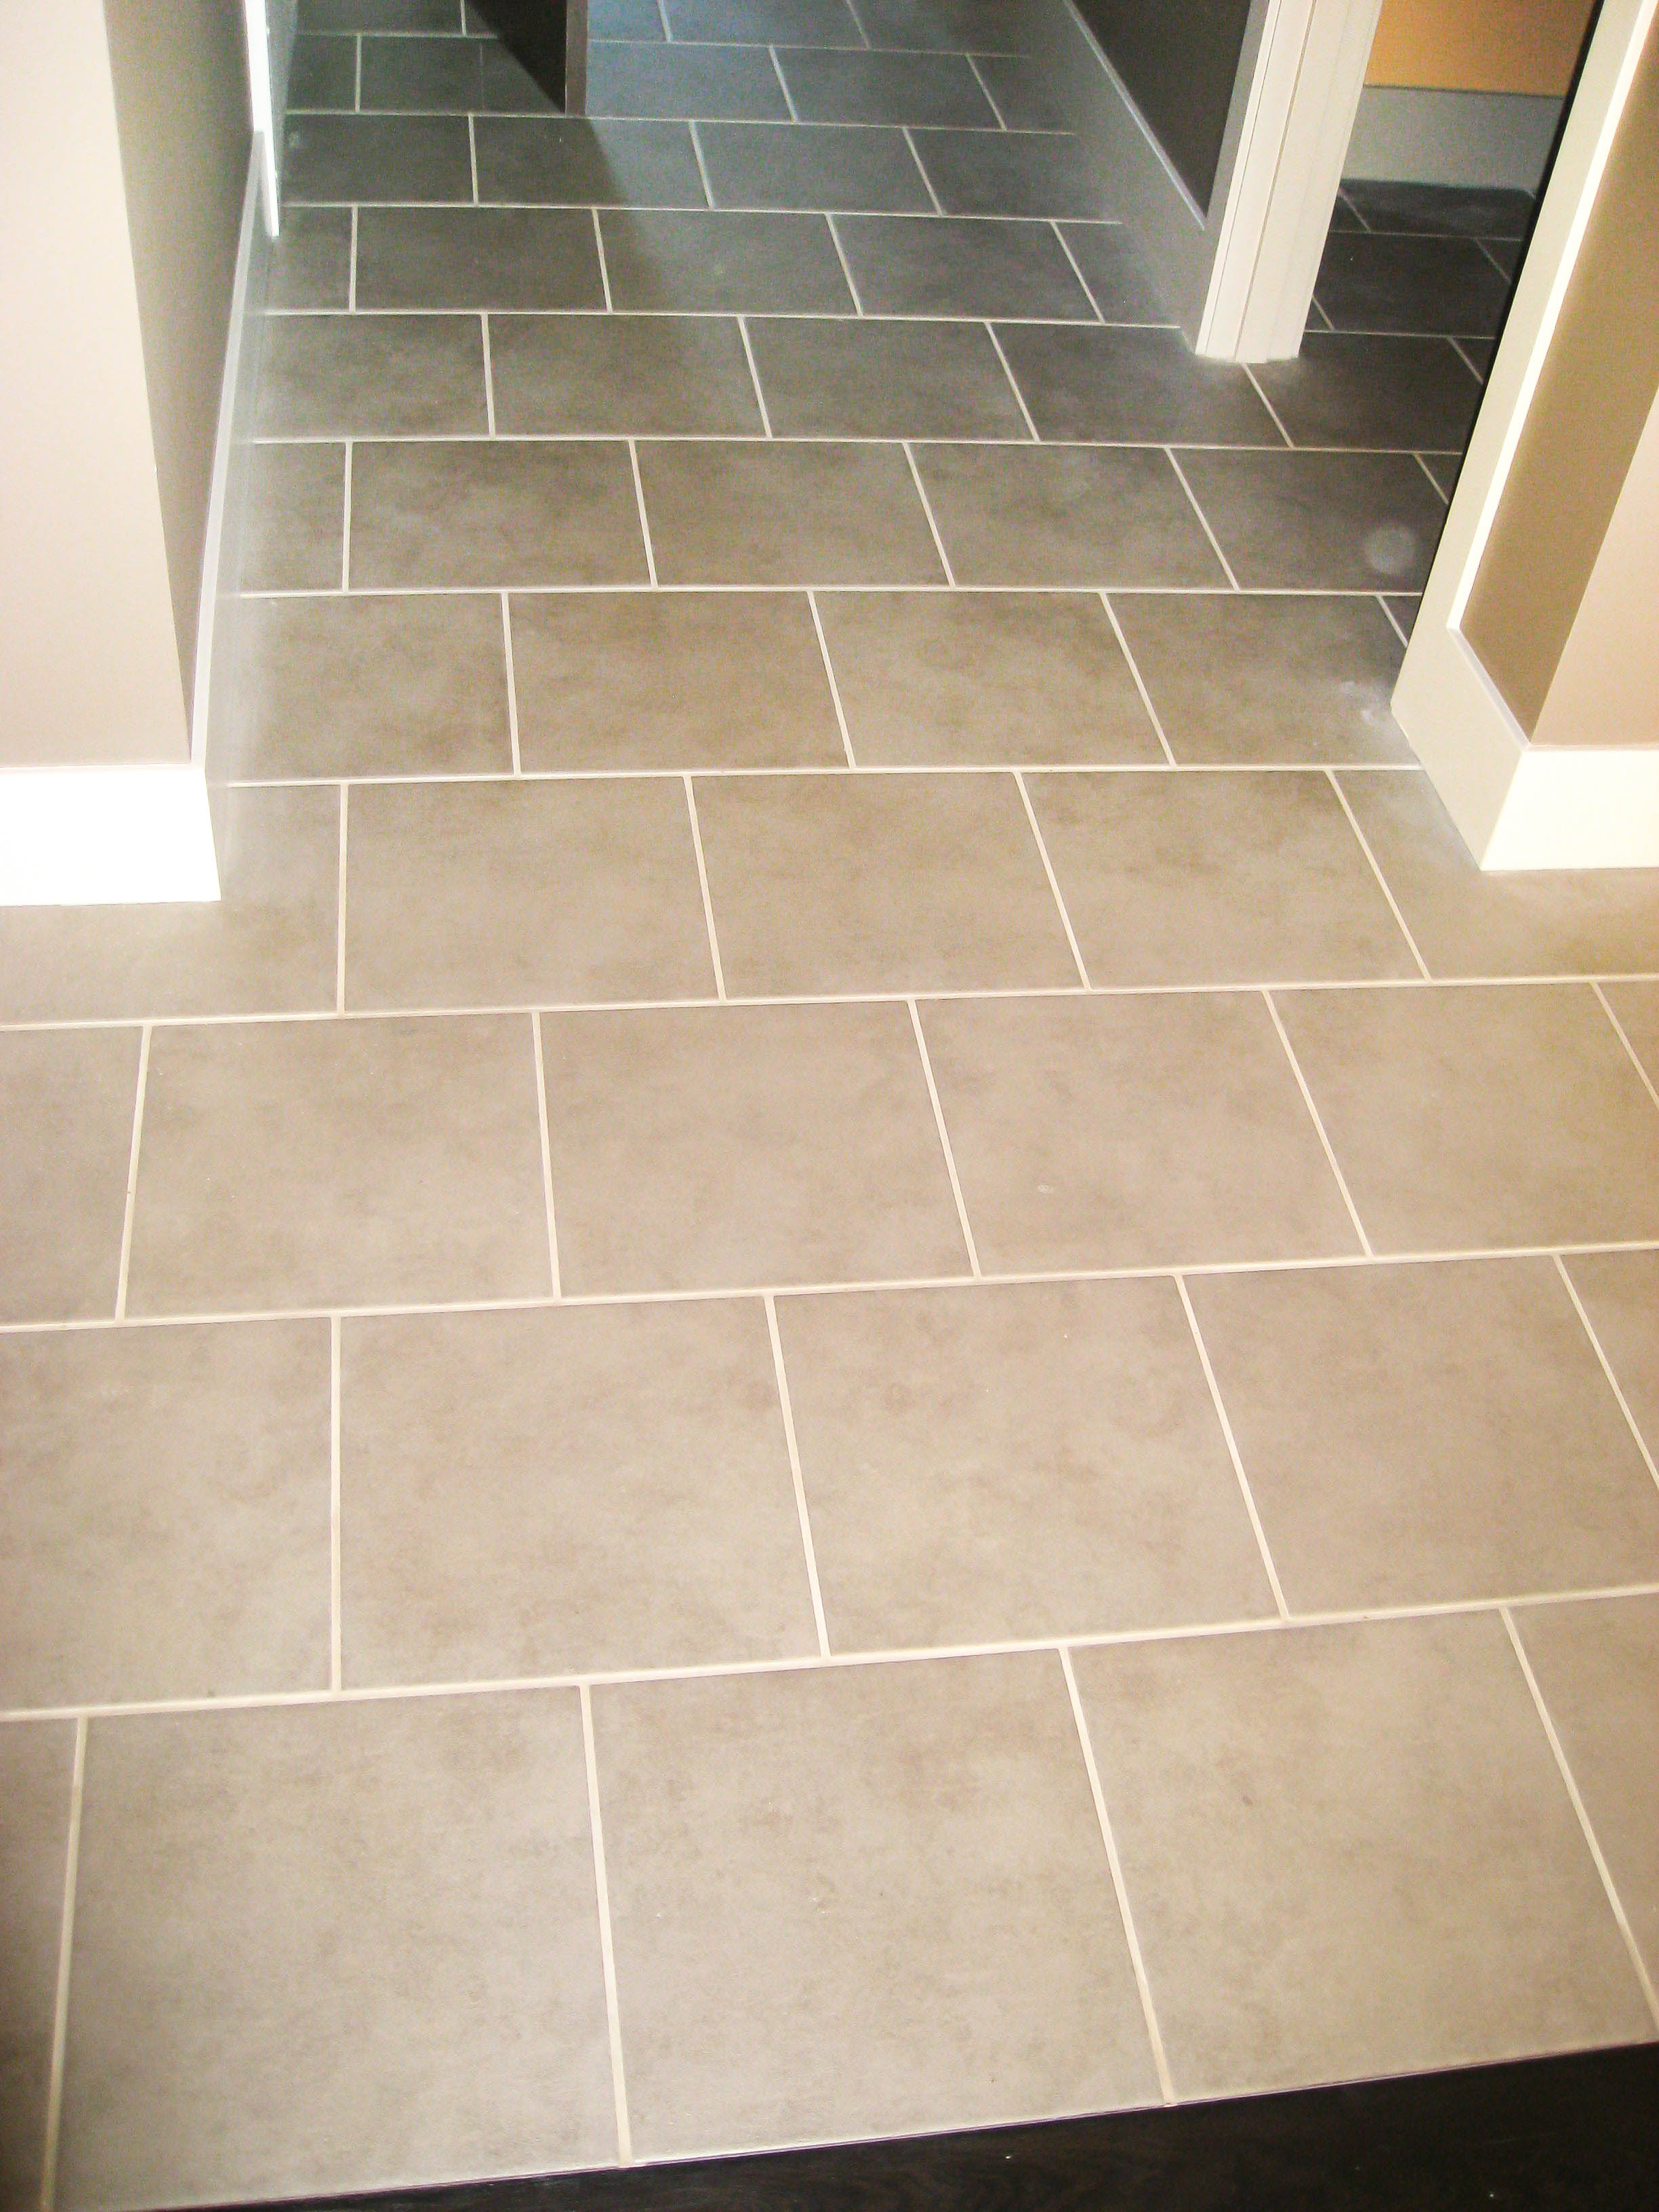 Seattle Tile And Grout Cleaning Tile Contractor IRC Tile Services - Cleaning grout off porcelain tile